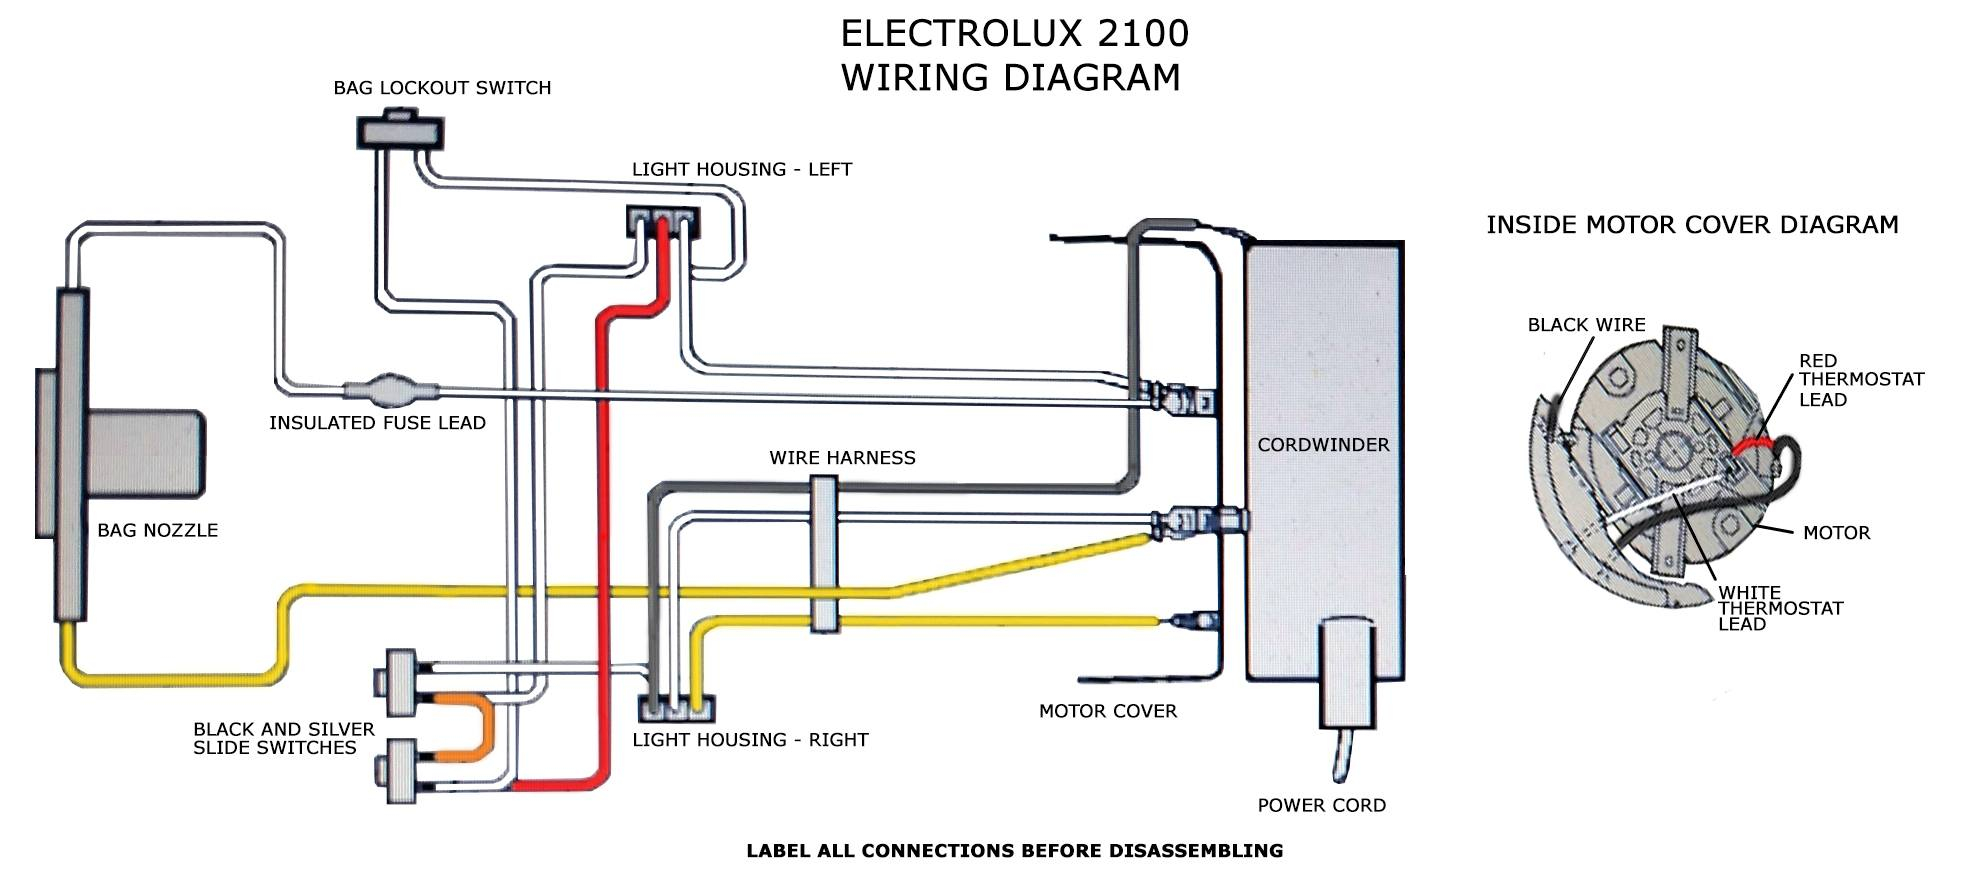 wiring diagram for bissell vacuum cleaner wiring diagram Bissell Vacuum Cleaner Wiring Diagram wiring diagram for vacuum cleaner